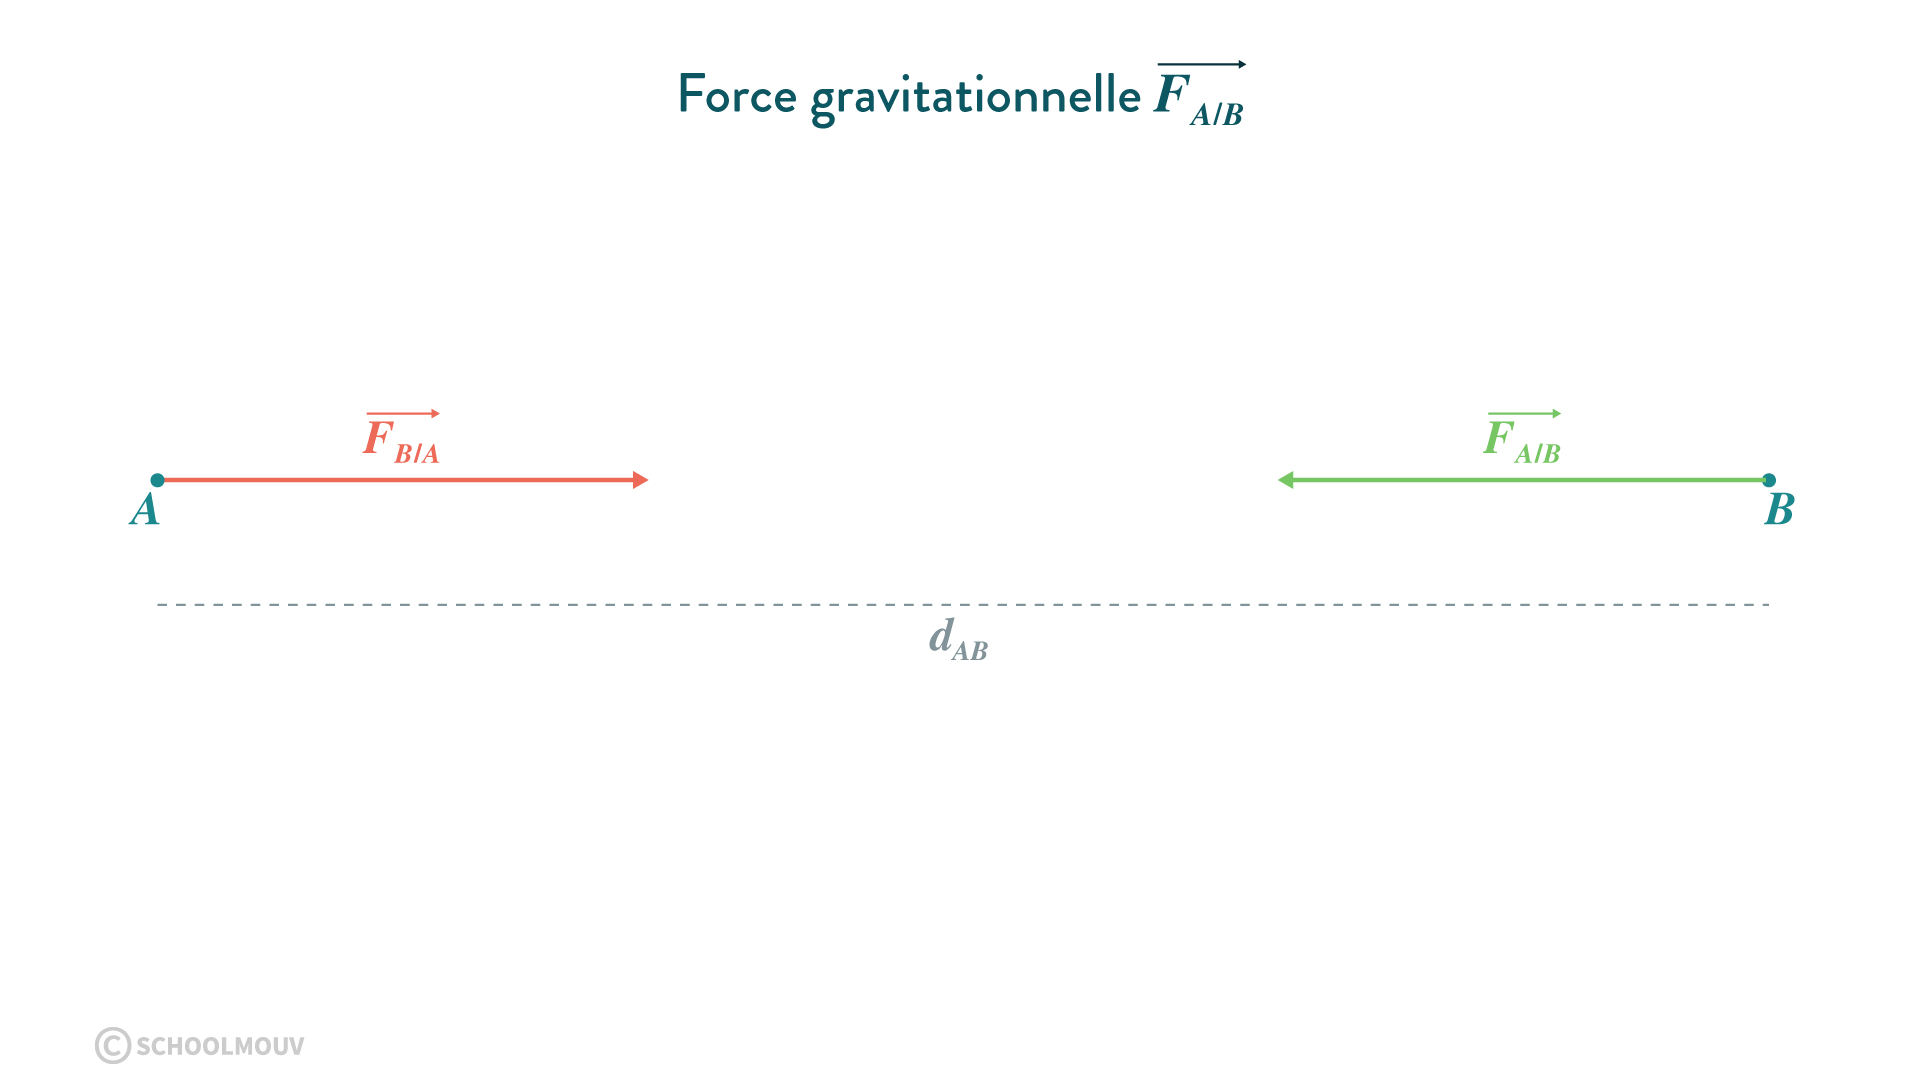 La force d'interaction gravitationnelle